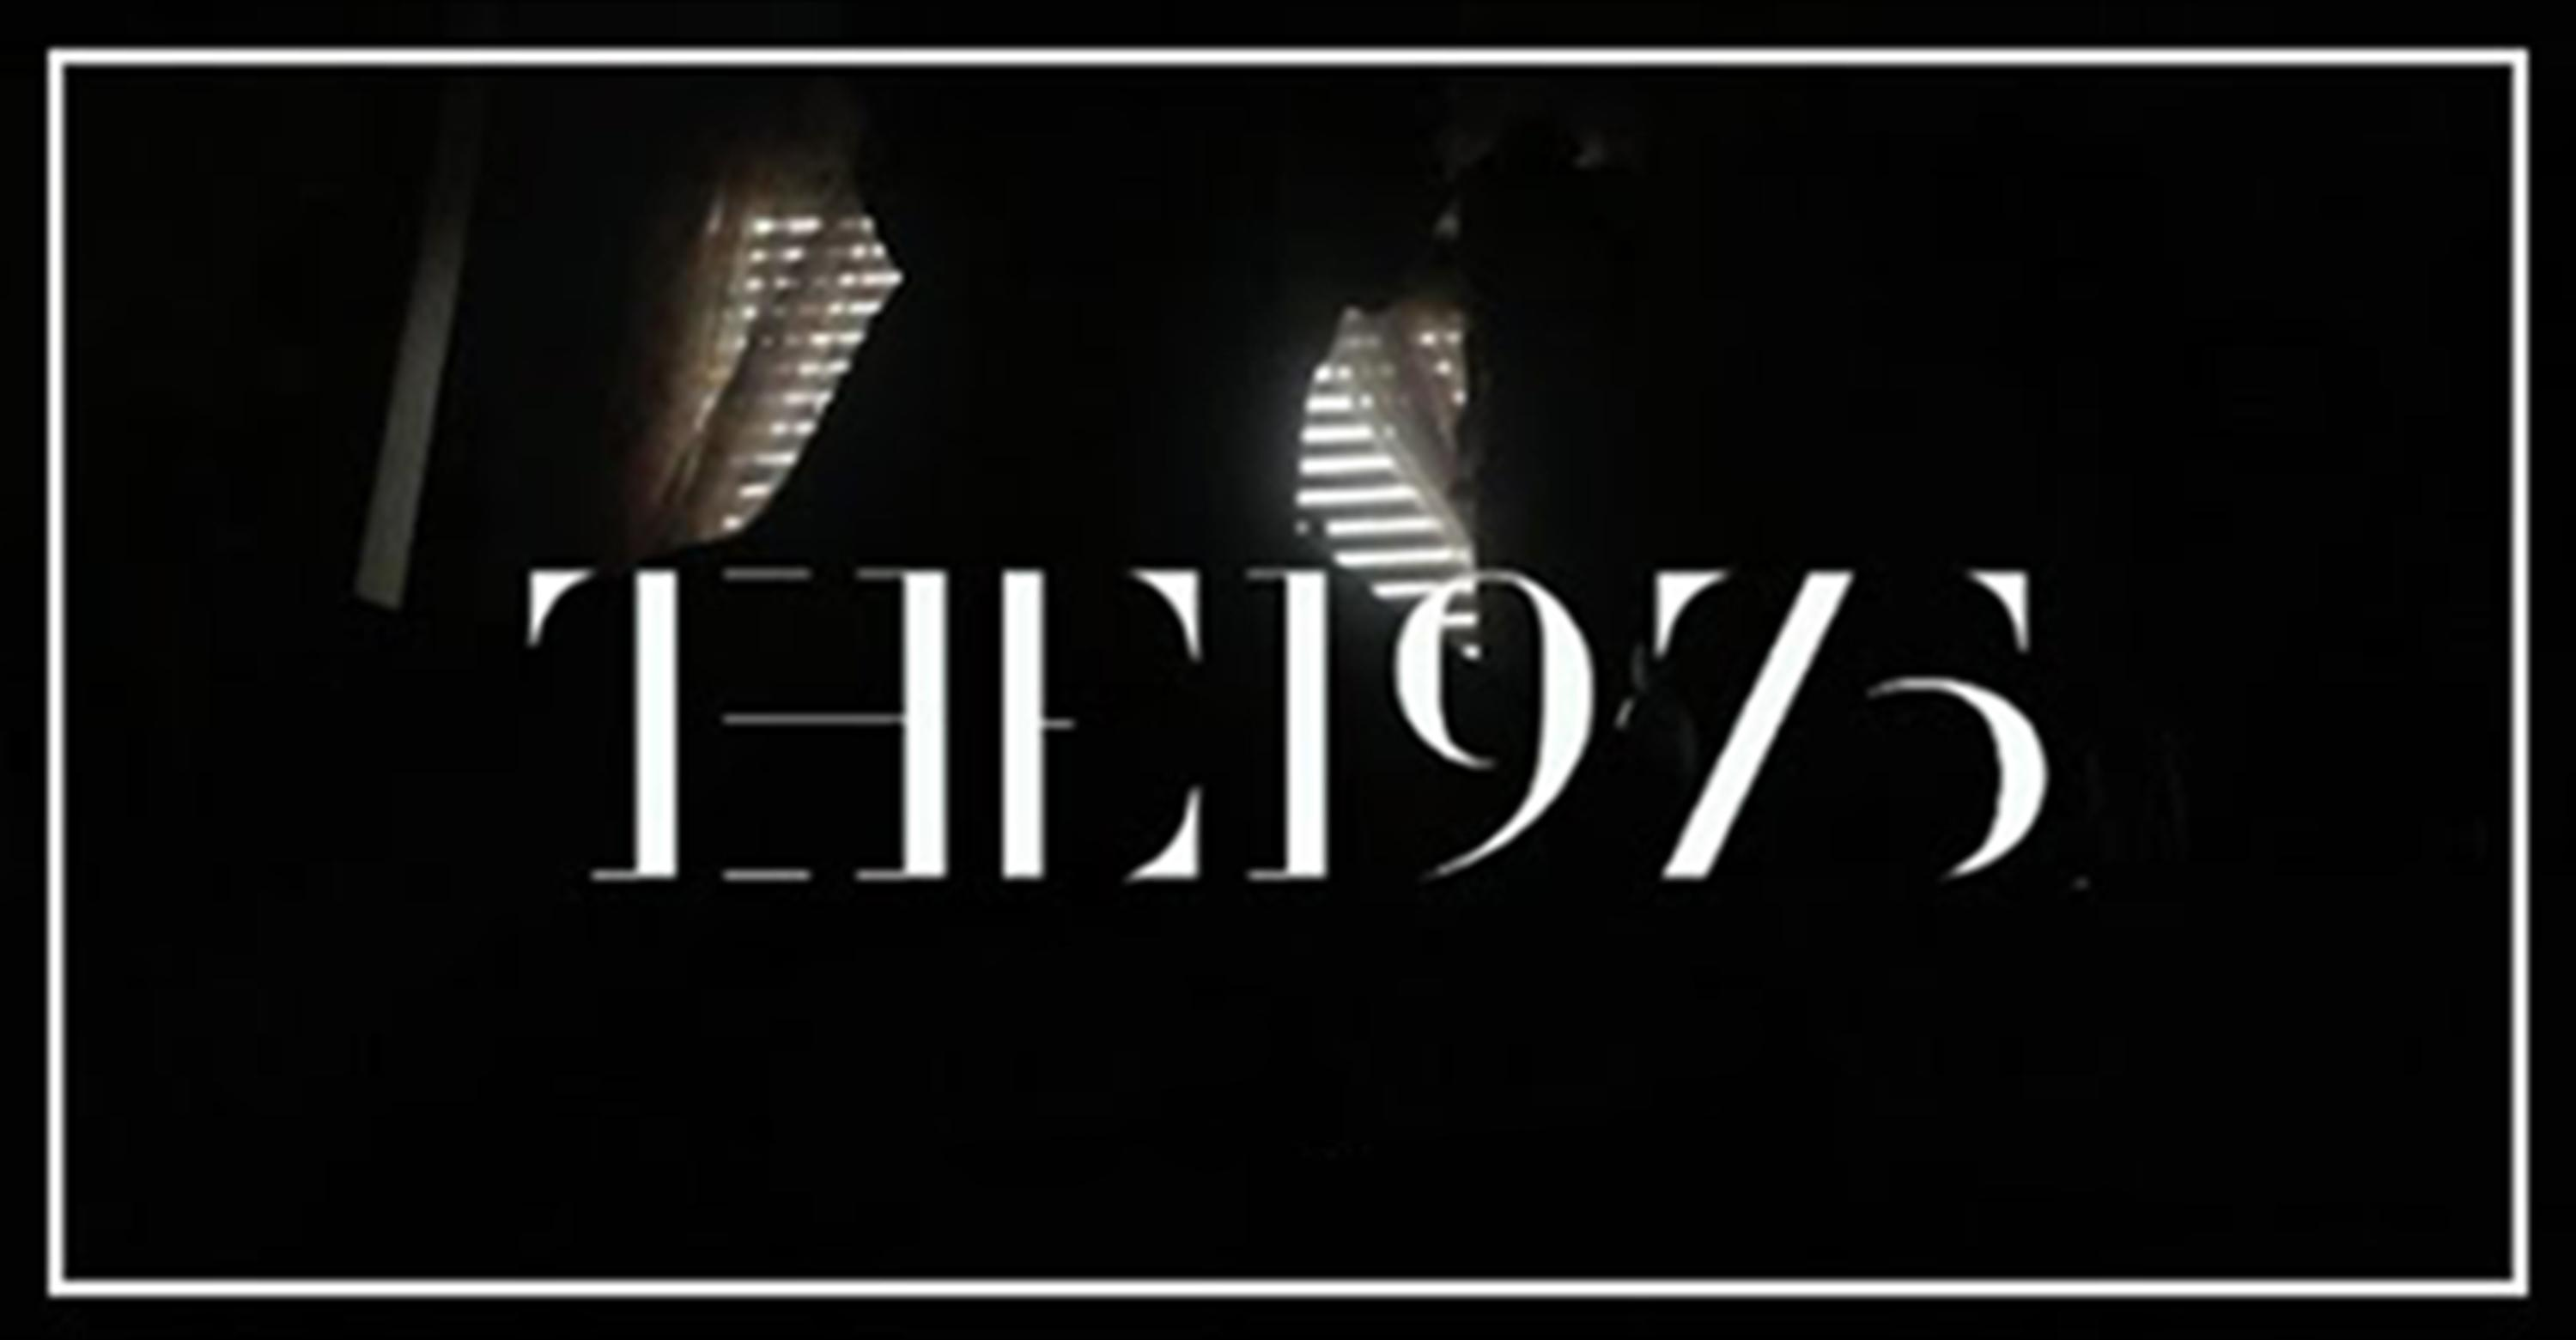 REVIEW: The 1975 Concert